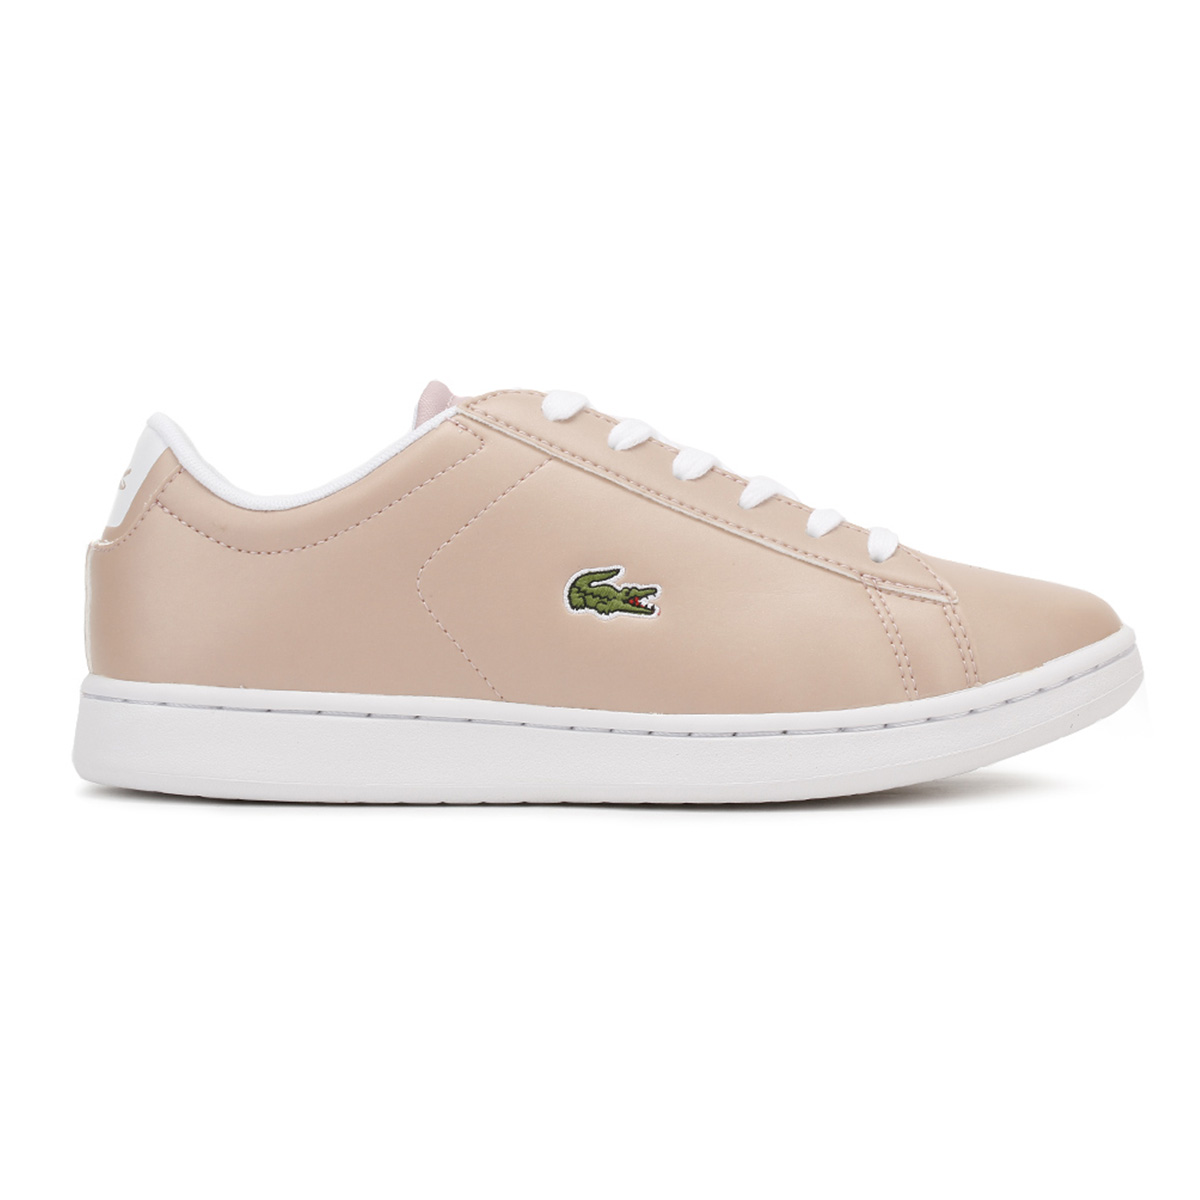 Baby Lacoste Shoes Uk